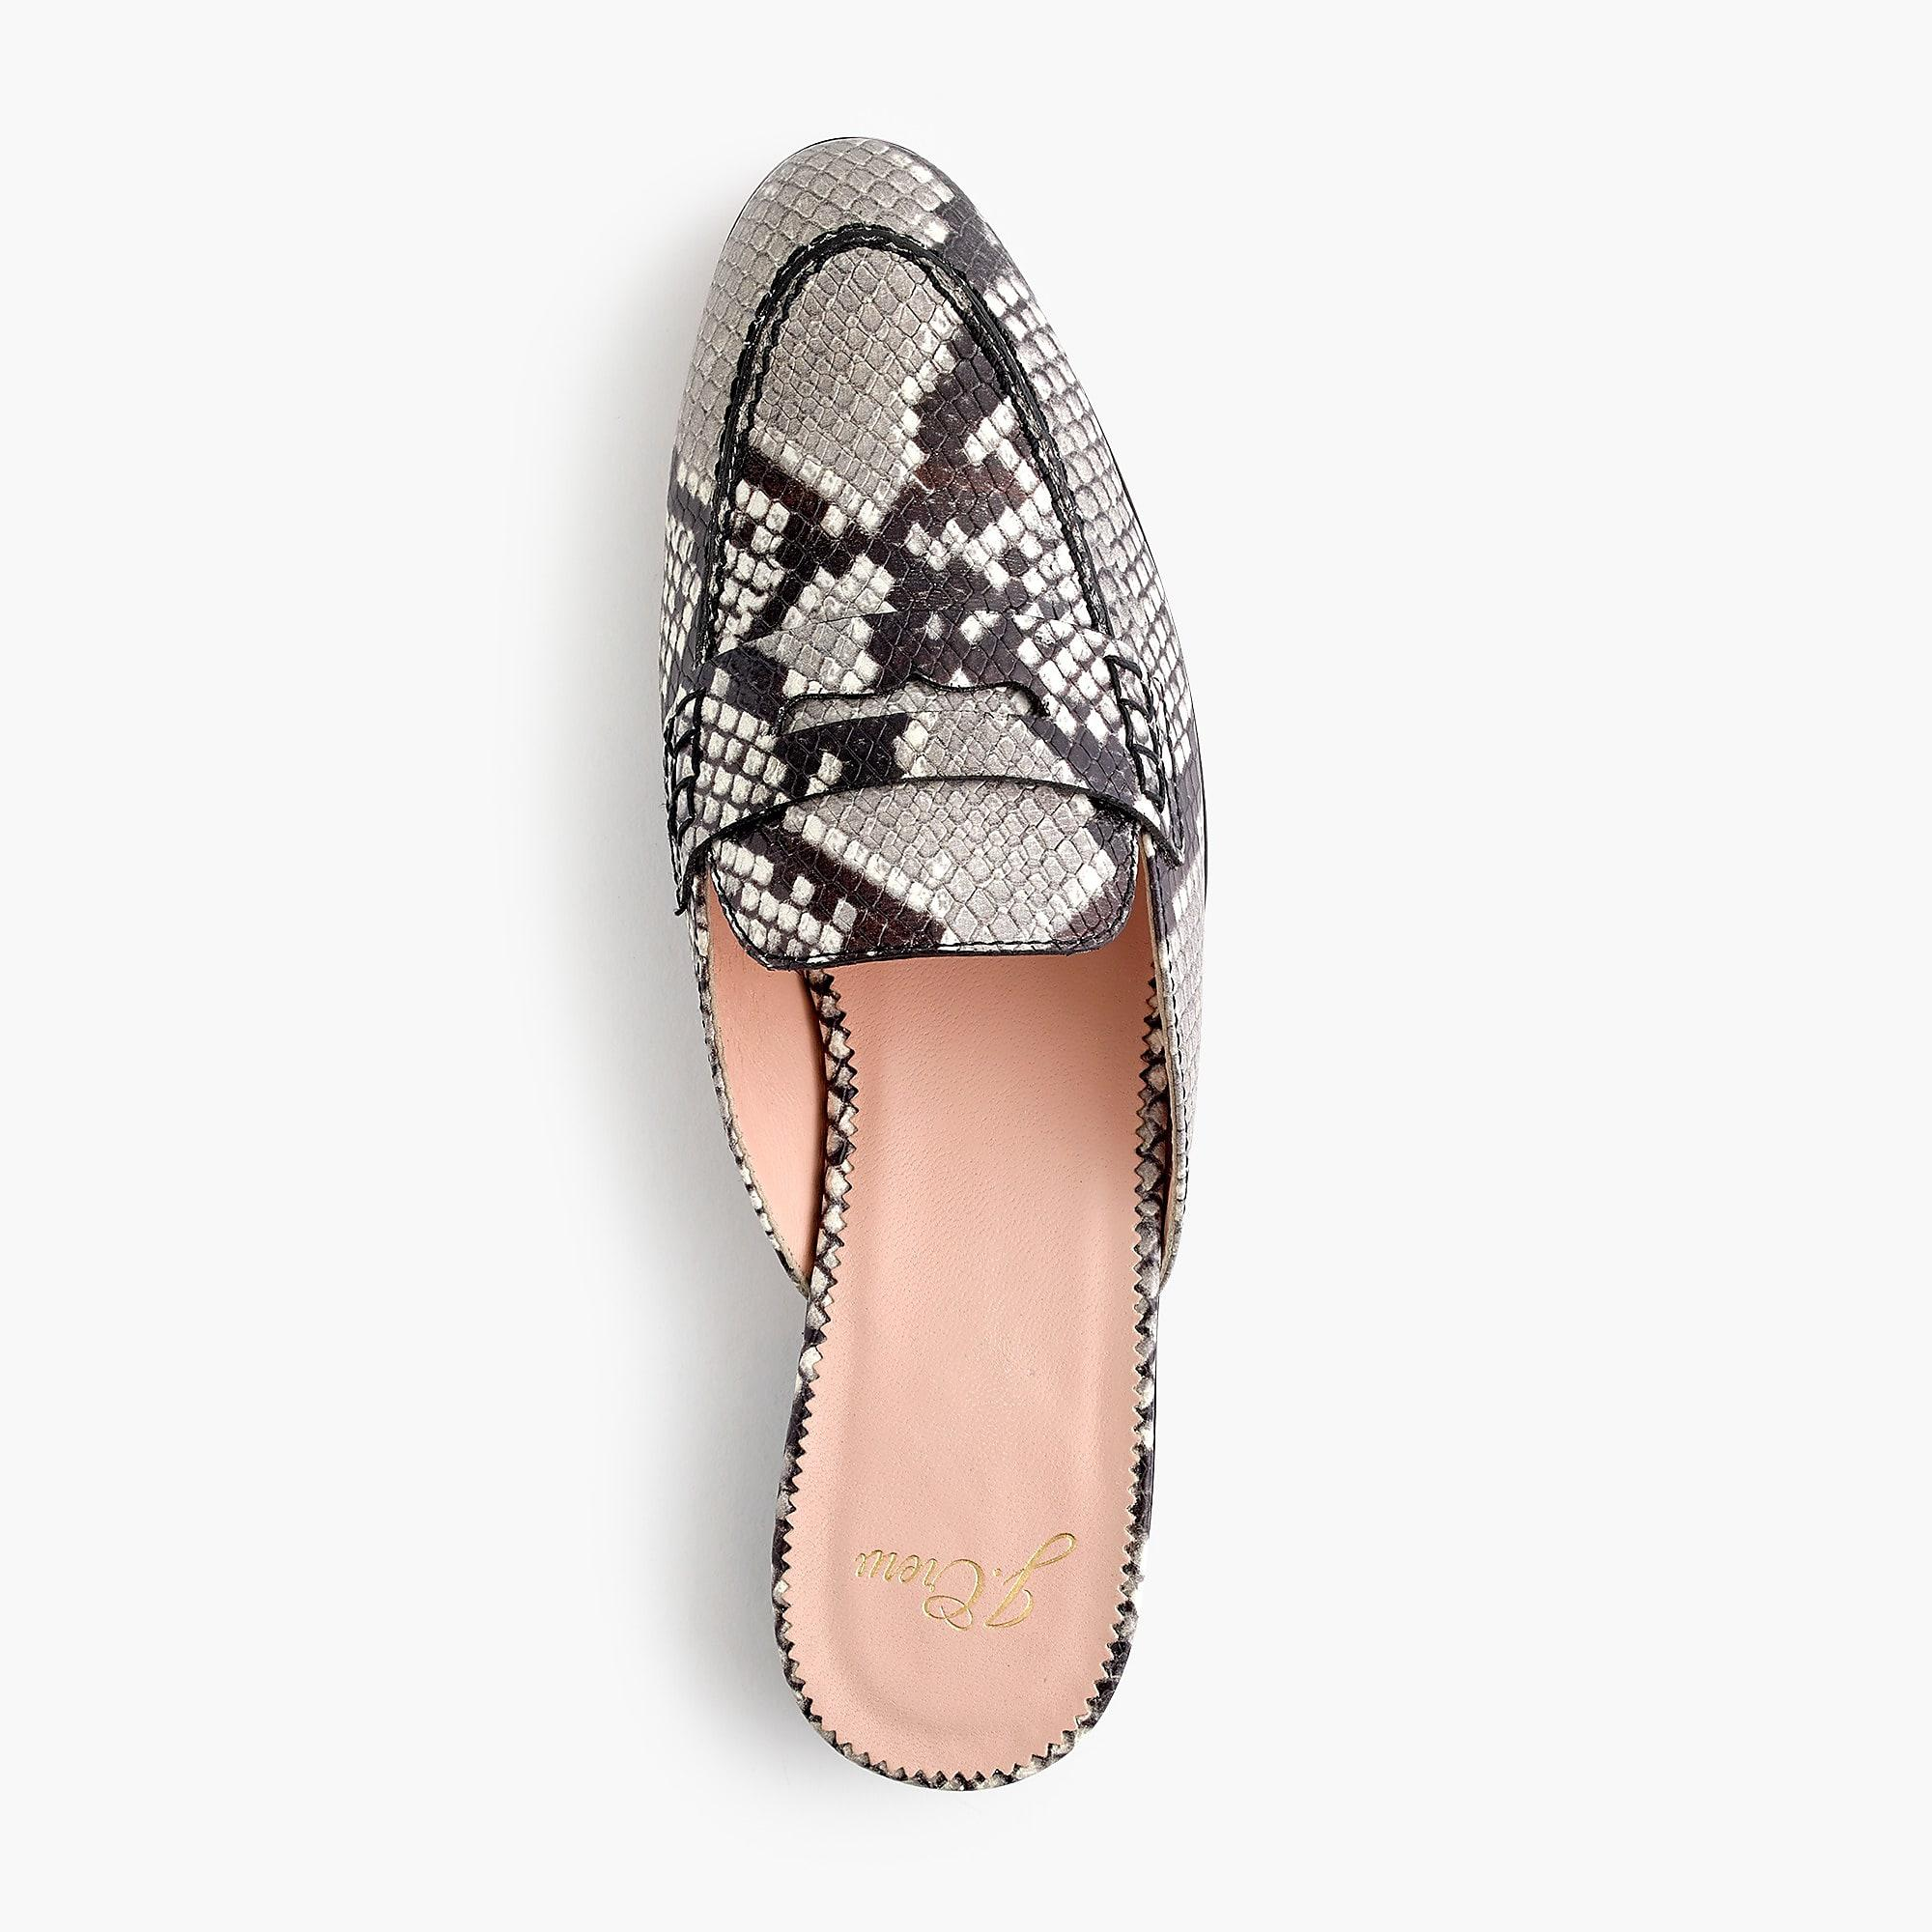 6770c711500 ... Academy Penny Loafer Mules In Faux Snakeskin - Lyst. View fullscreen